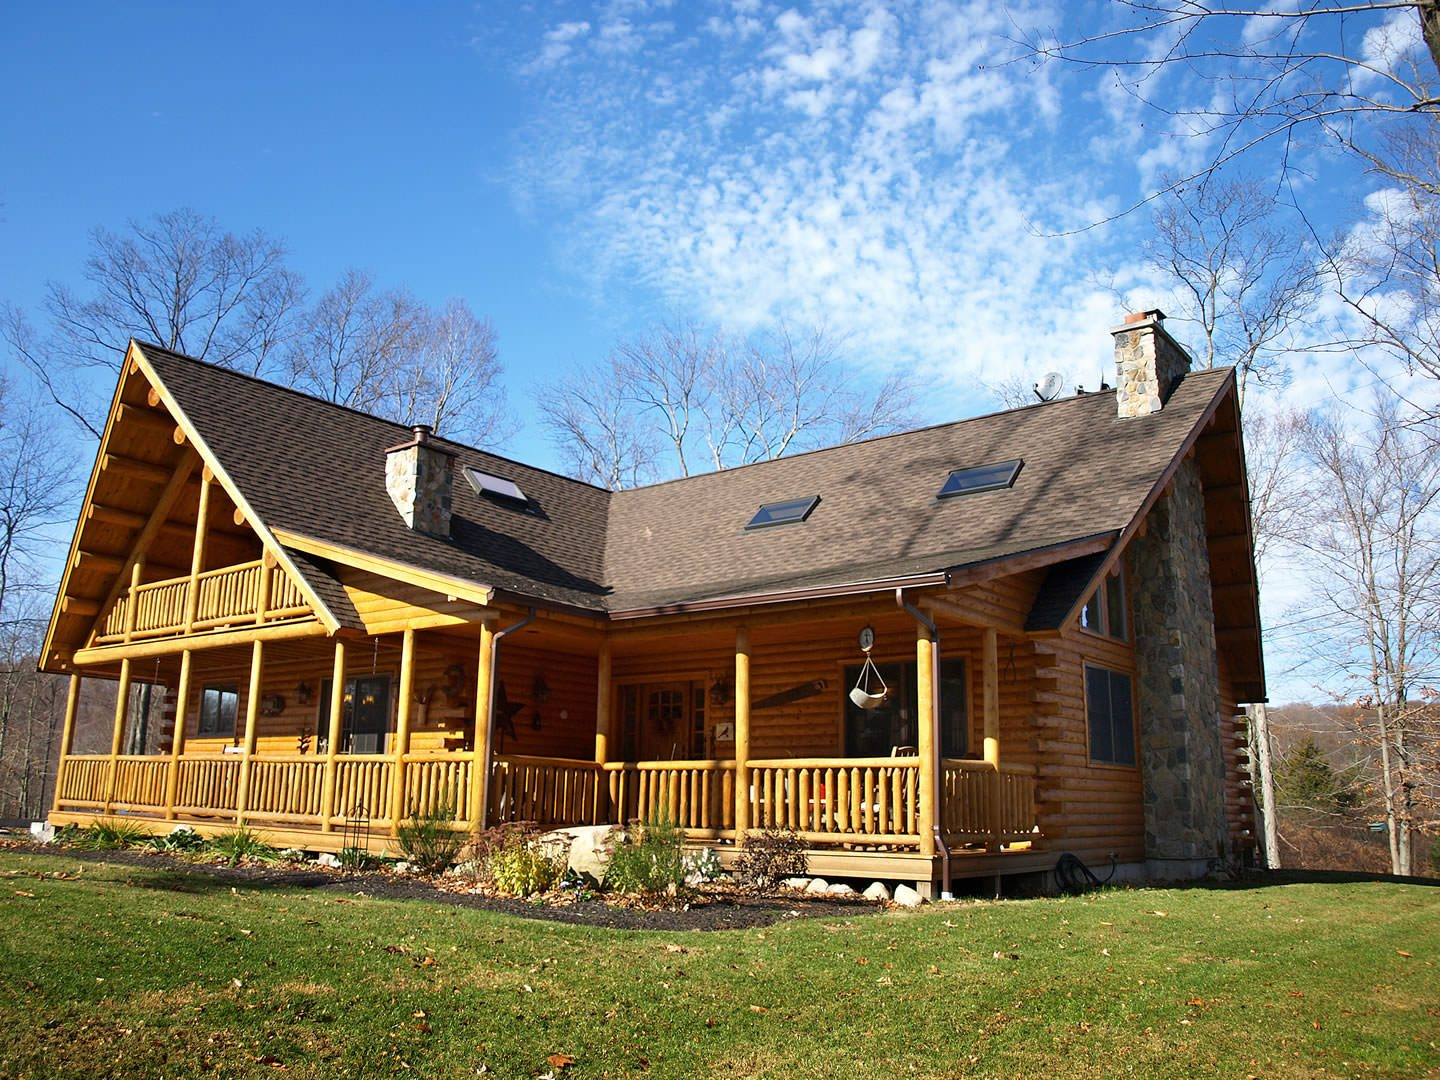 Buechel - 06595 - Katahdin Cedar Log Homes